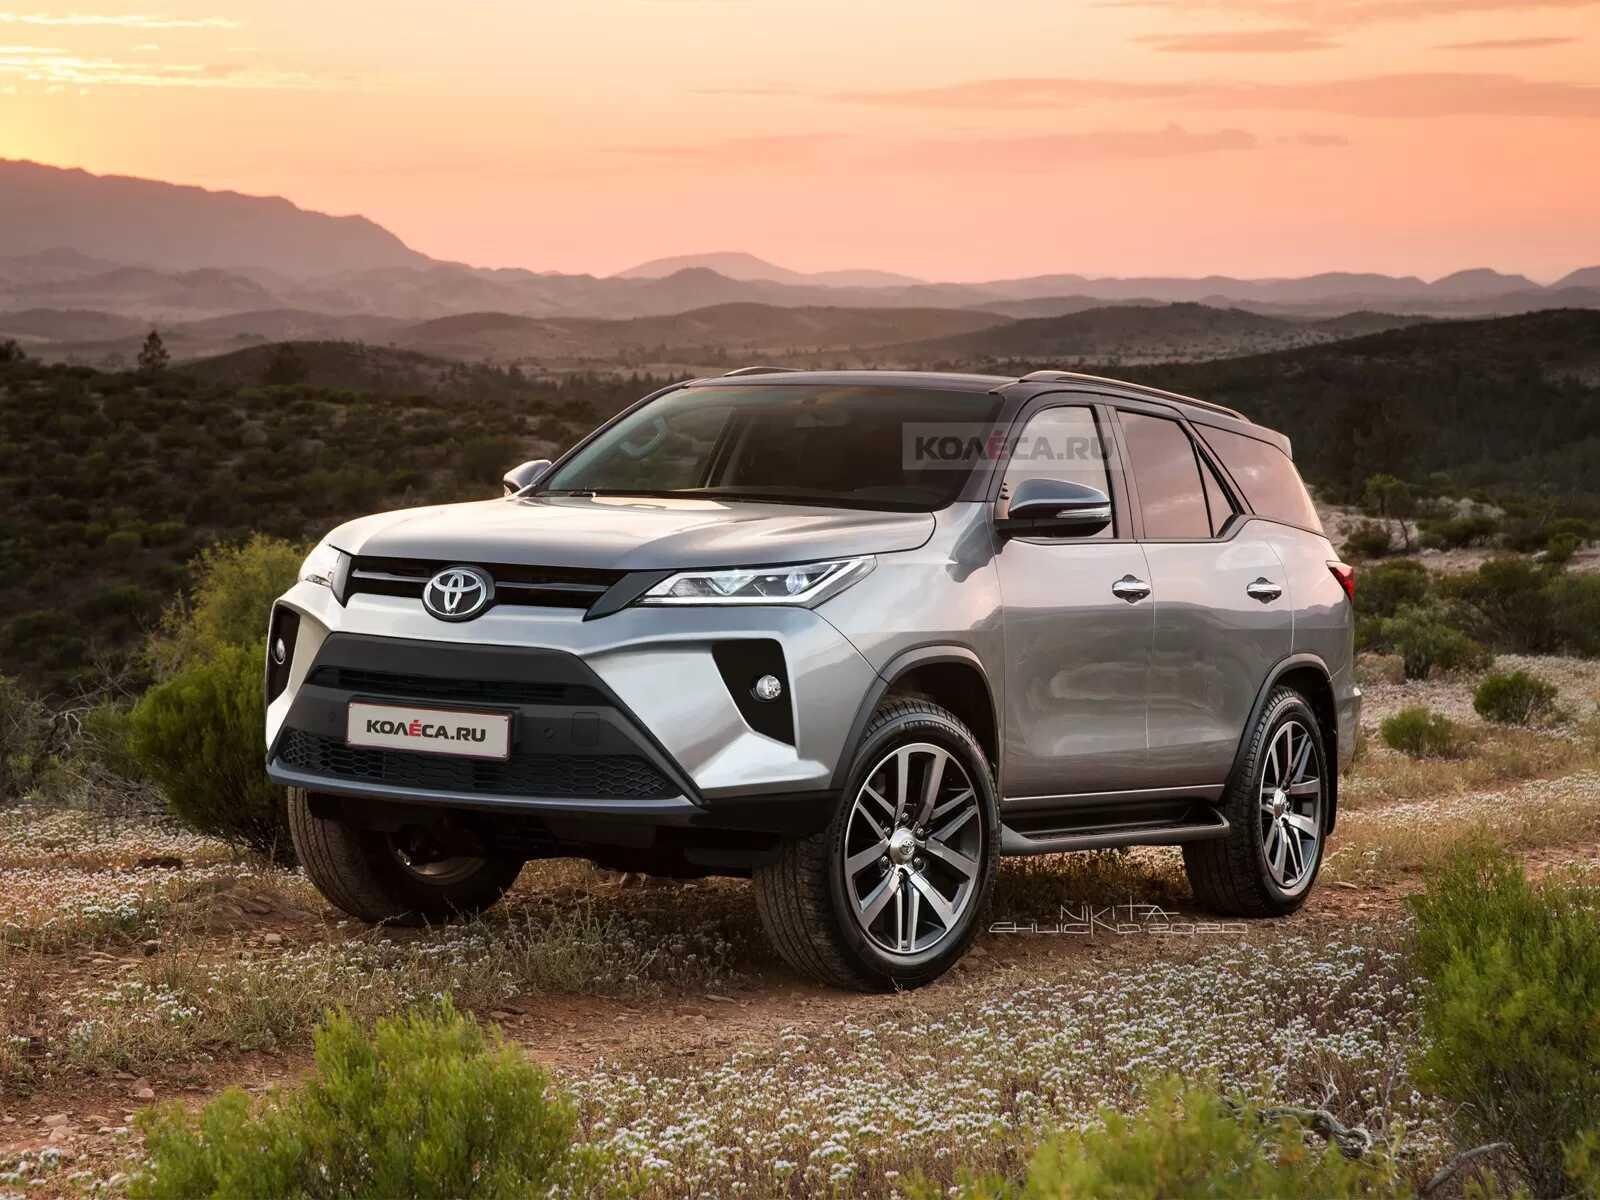 Speculative Renderings: 2020 Toyota Fortuner Facelift 2